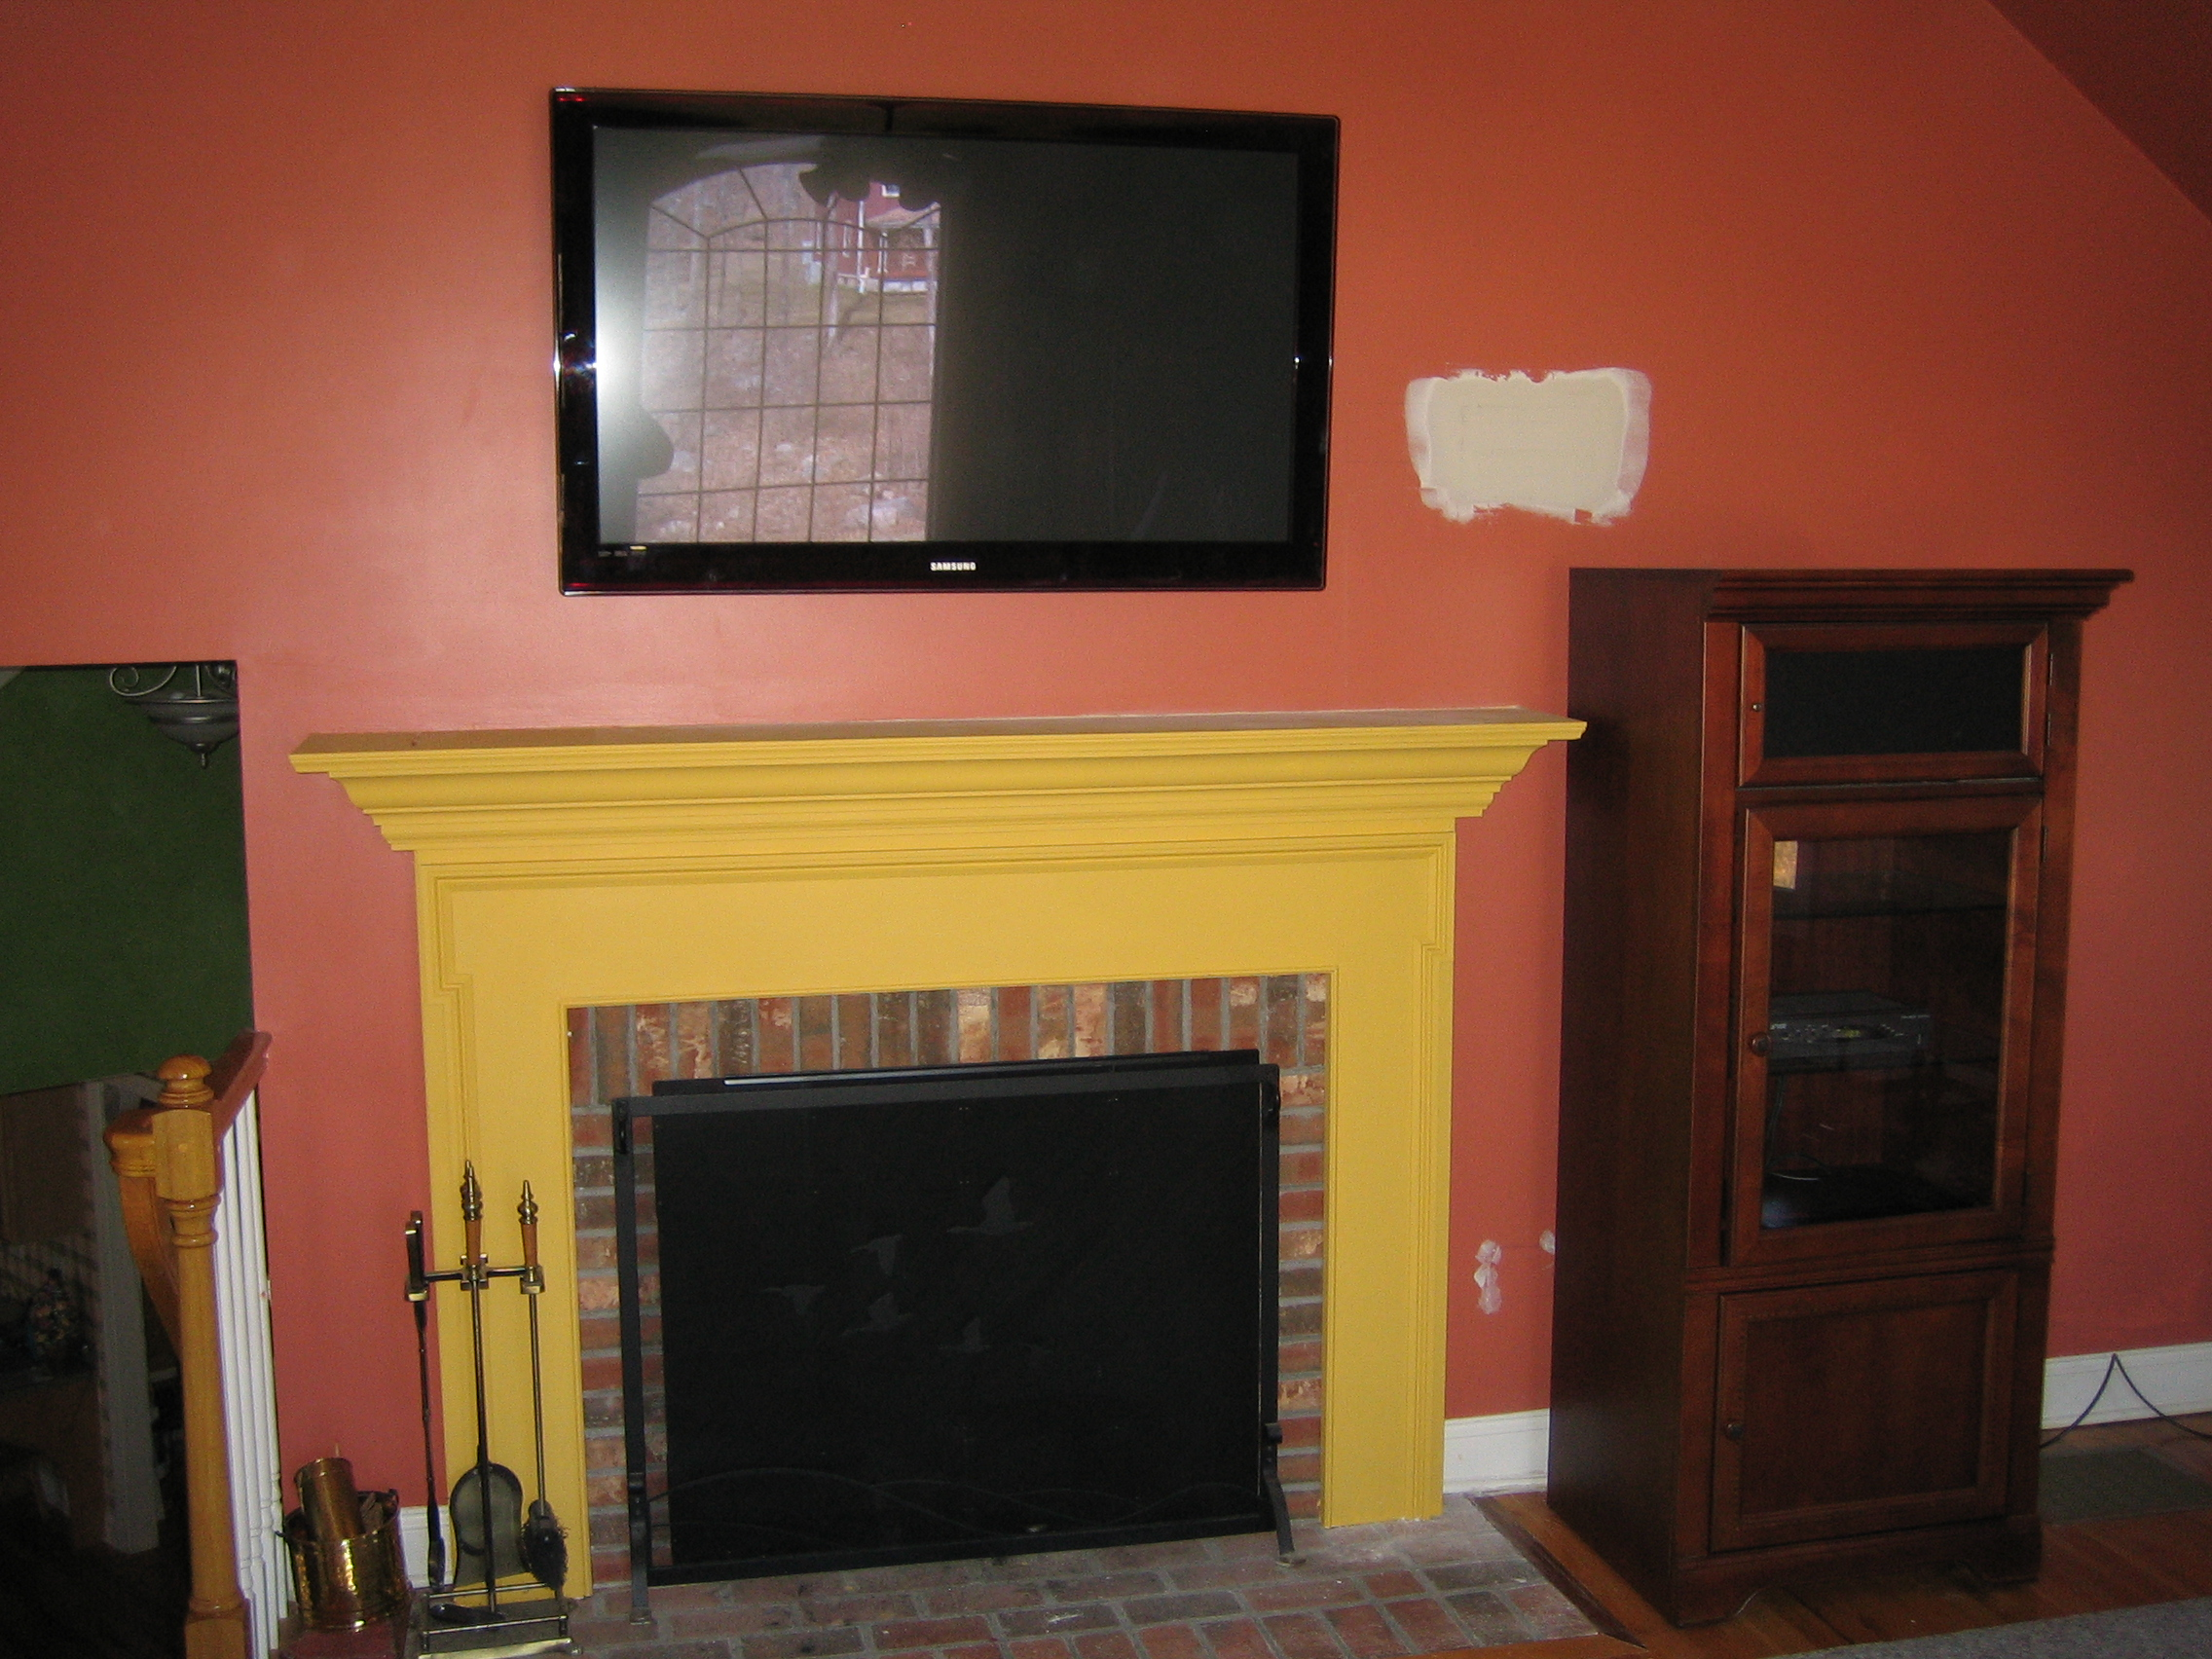 Mounting A Tv Above Fireplace On Fireplace With Tv Mounted